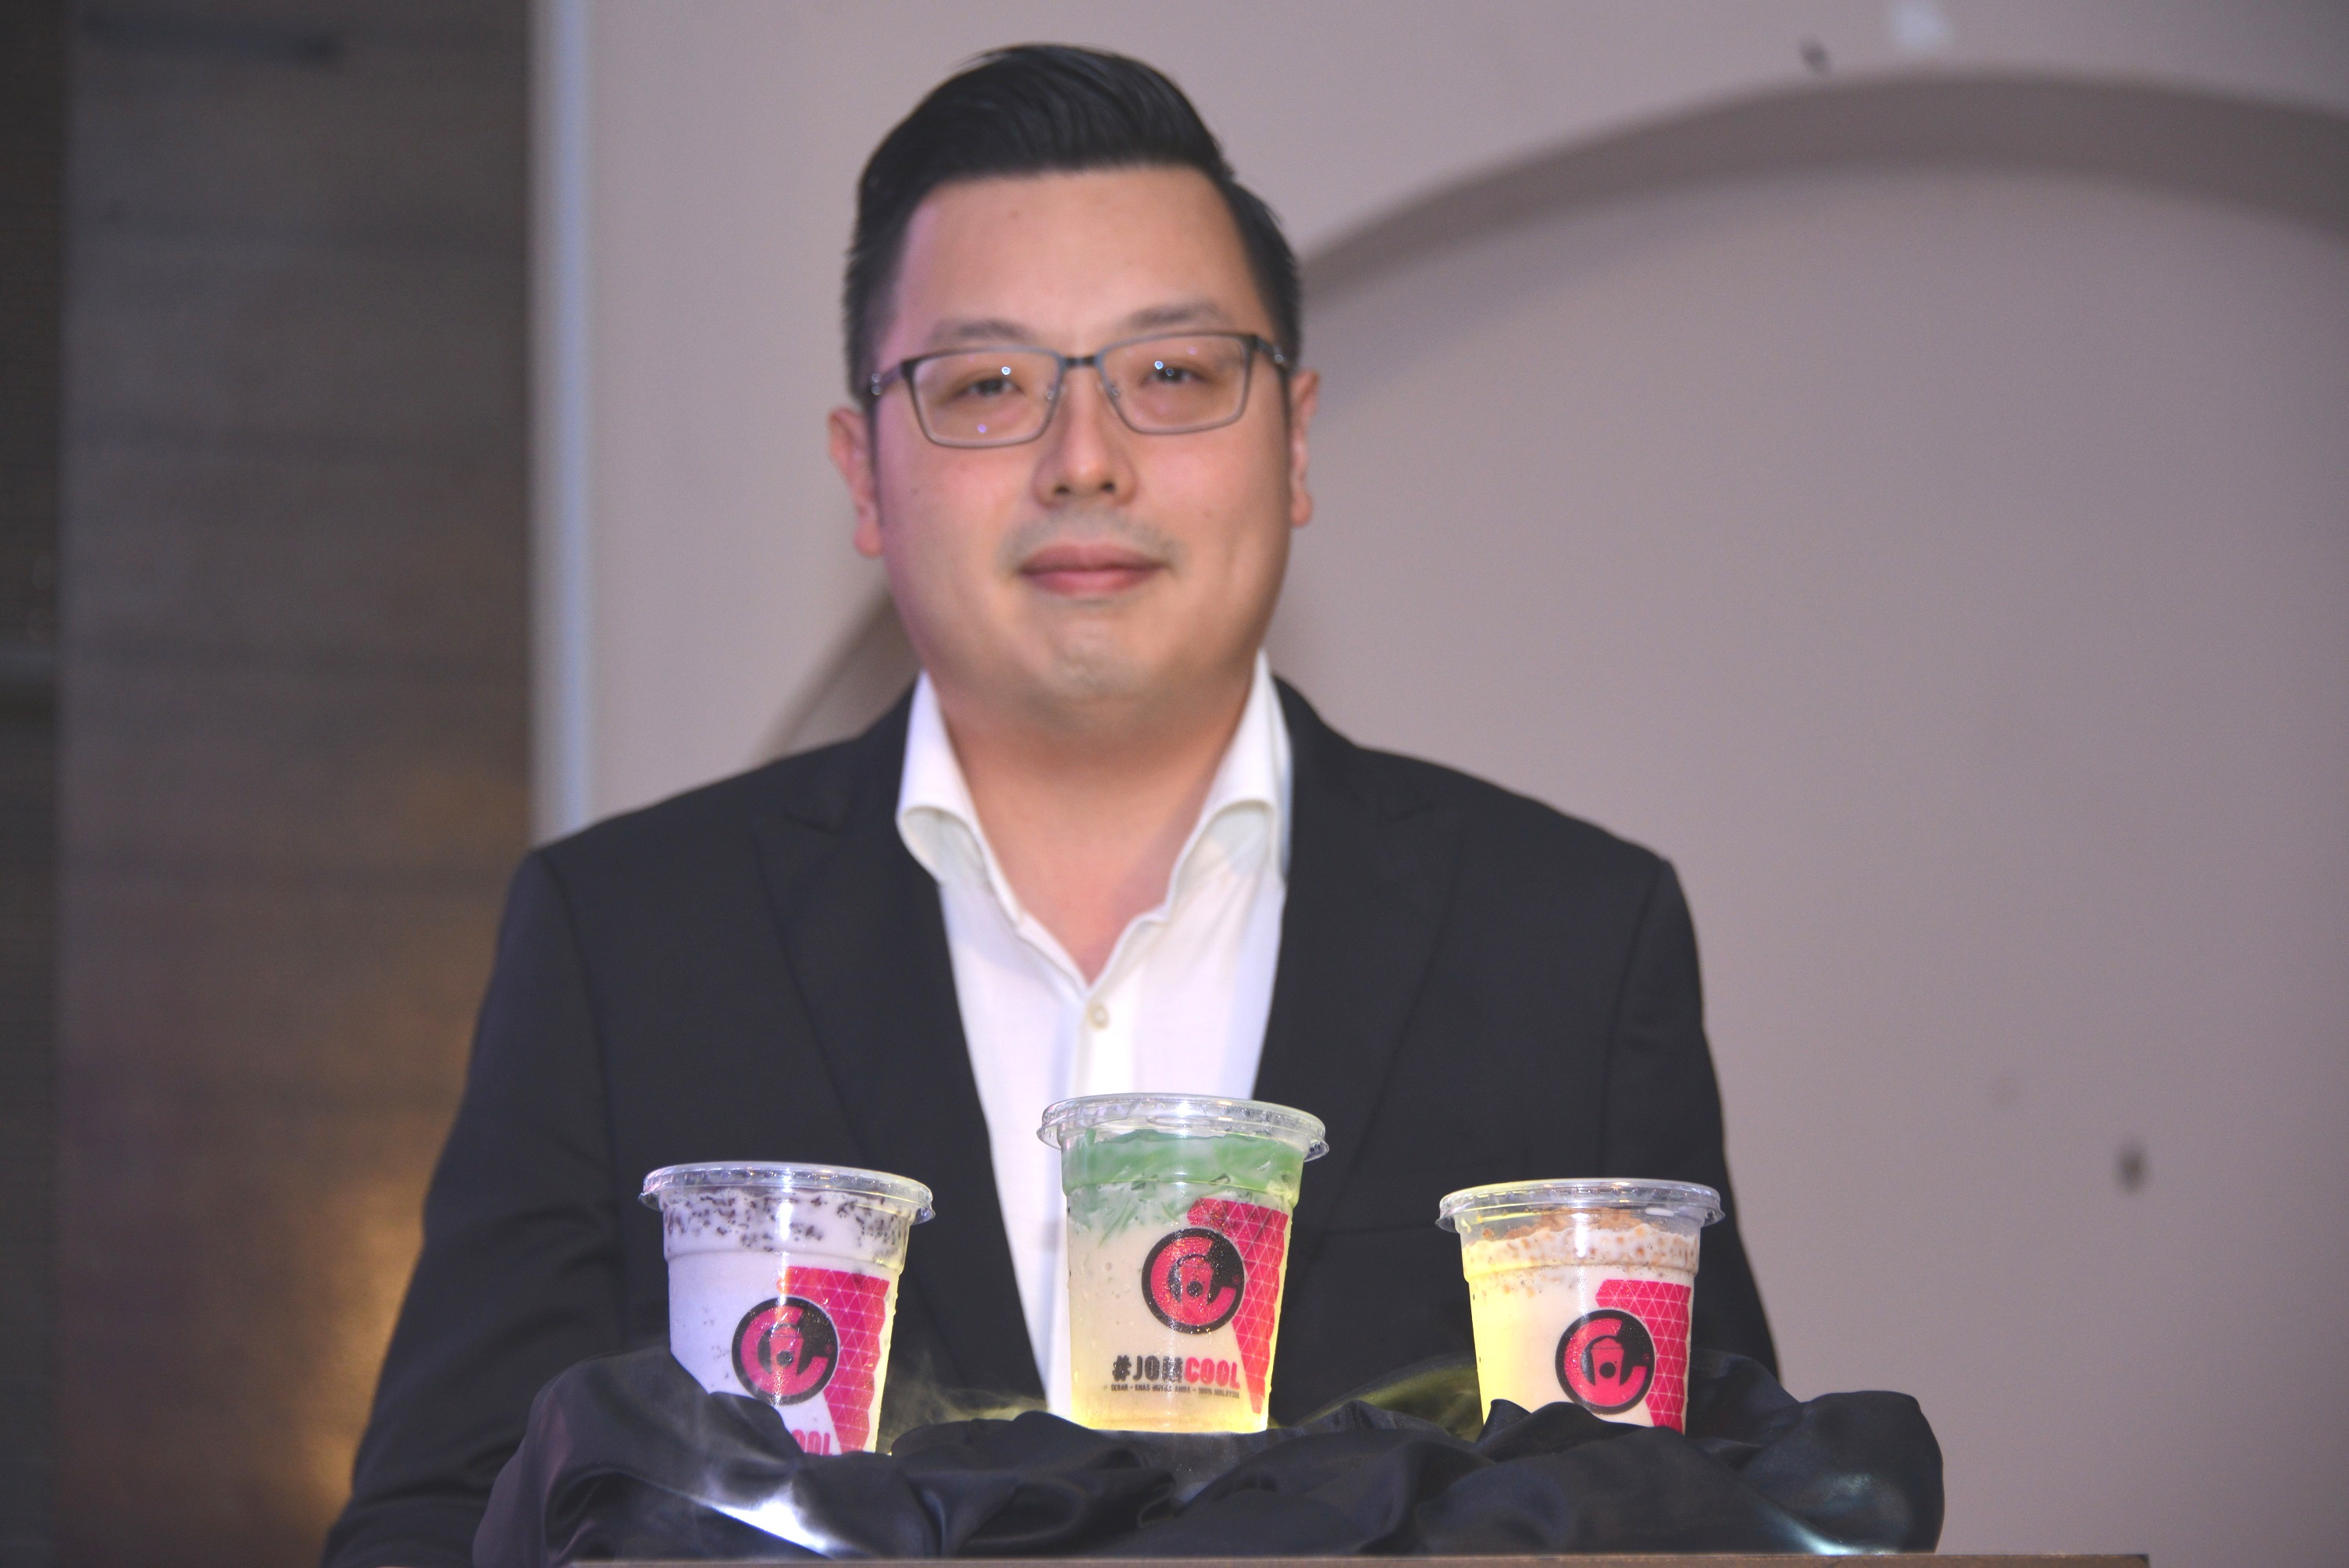 CEO of Cool Blog, Keith Loh, at the launch of the new flavours